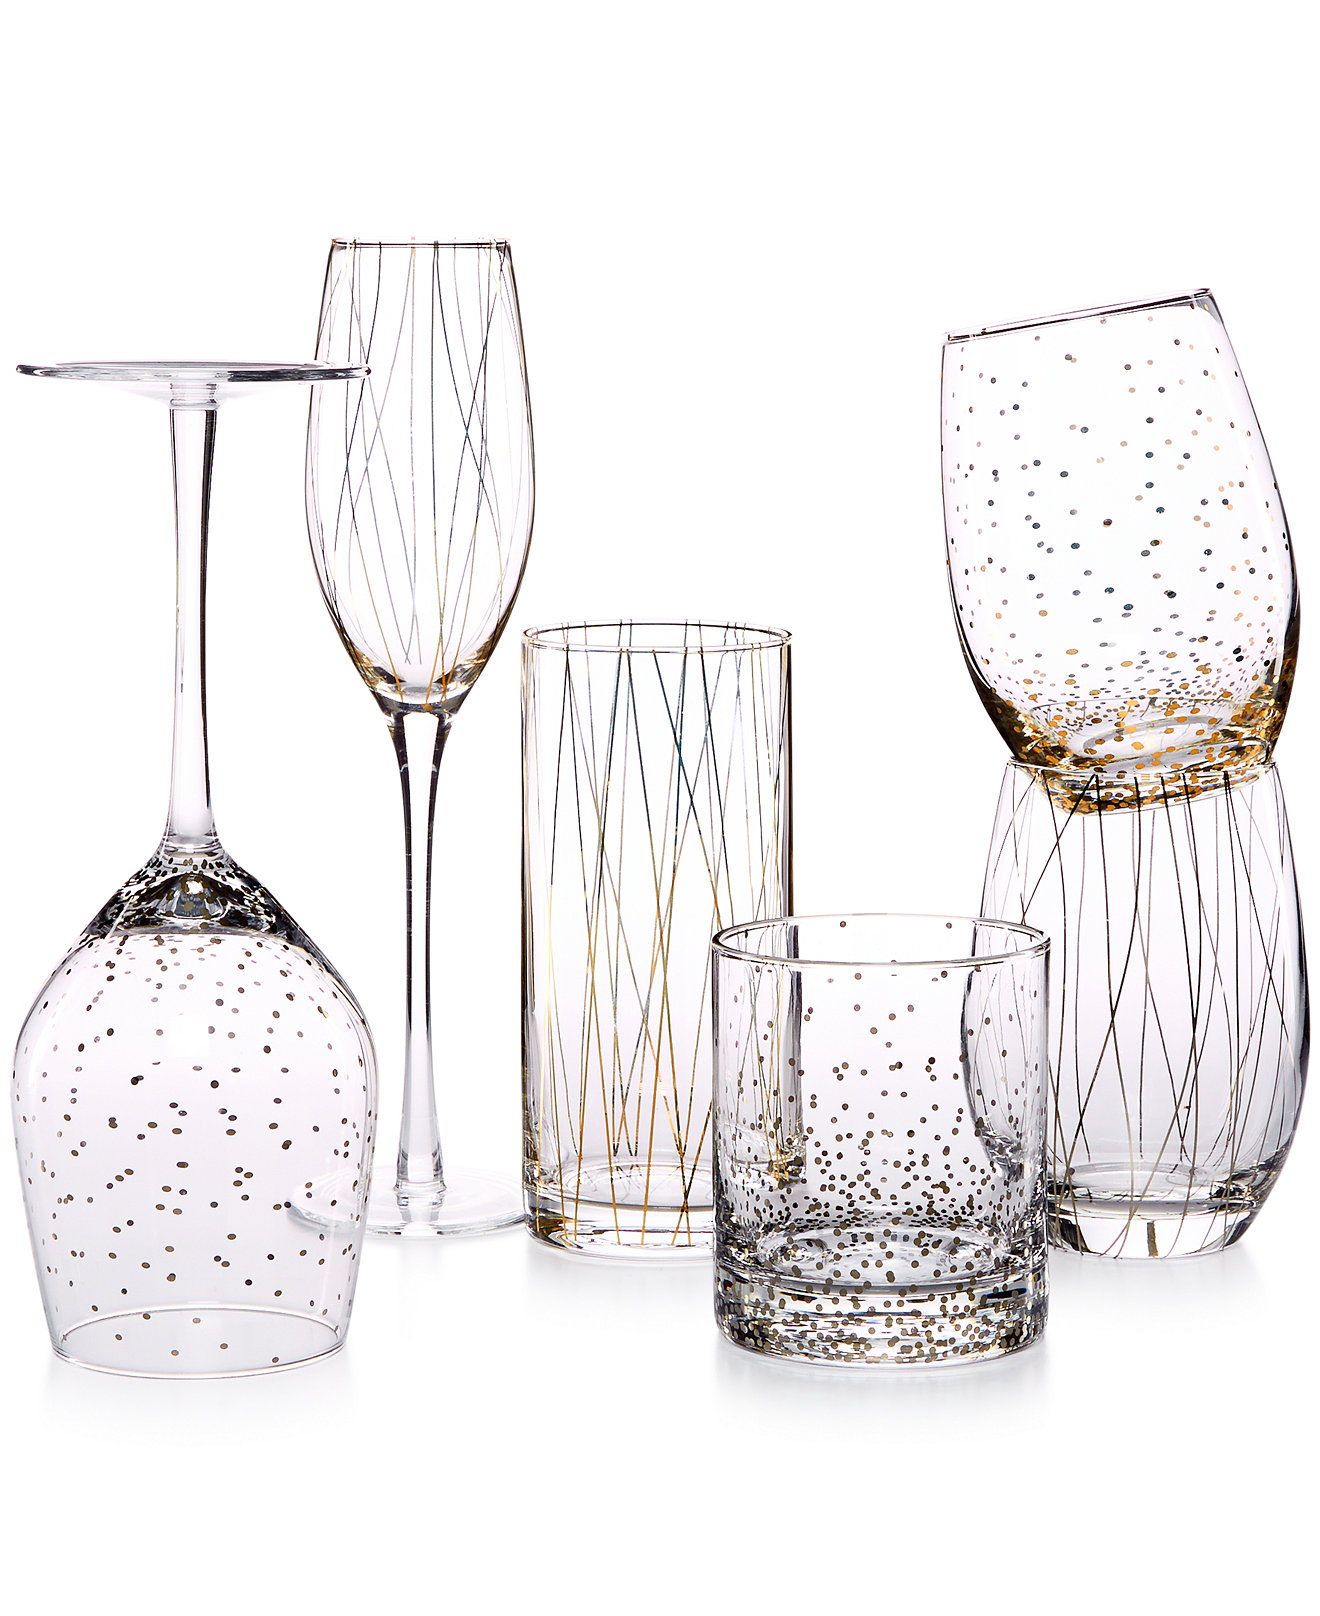 Mikasa Wine Glasses Collection Ideas